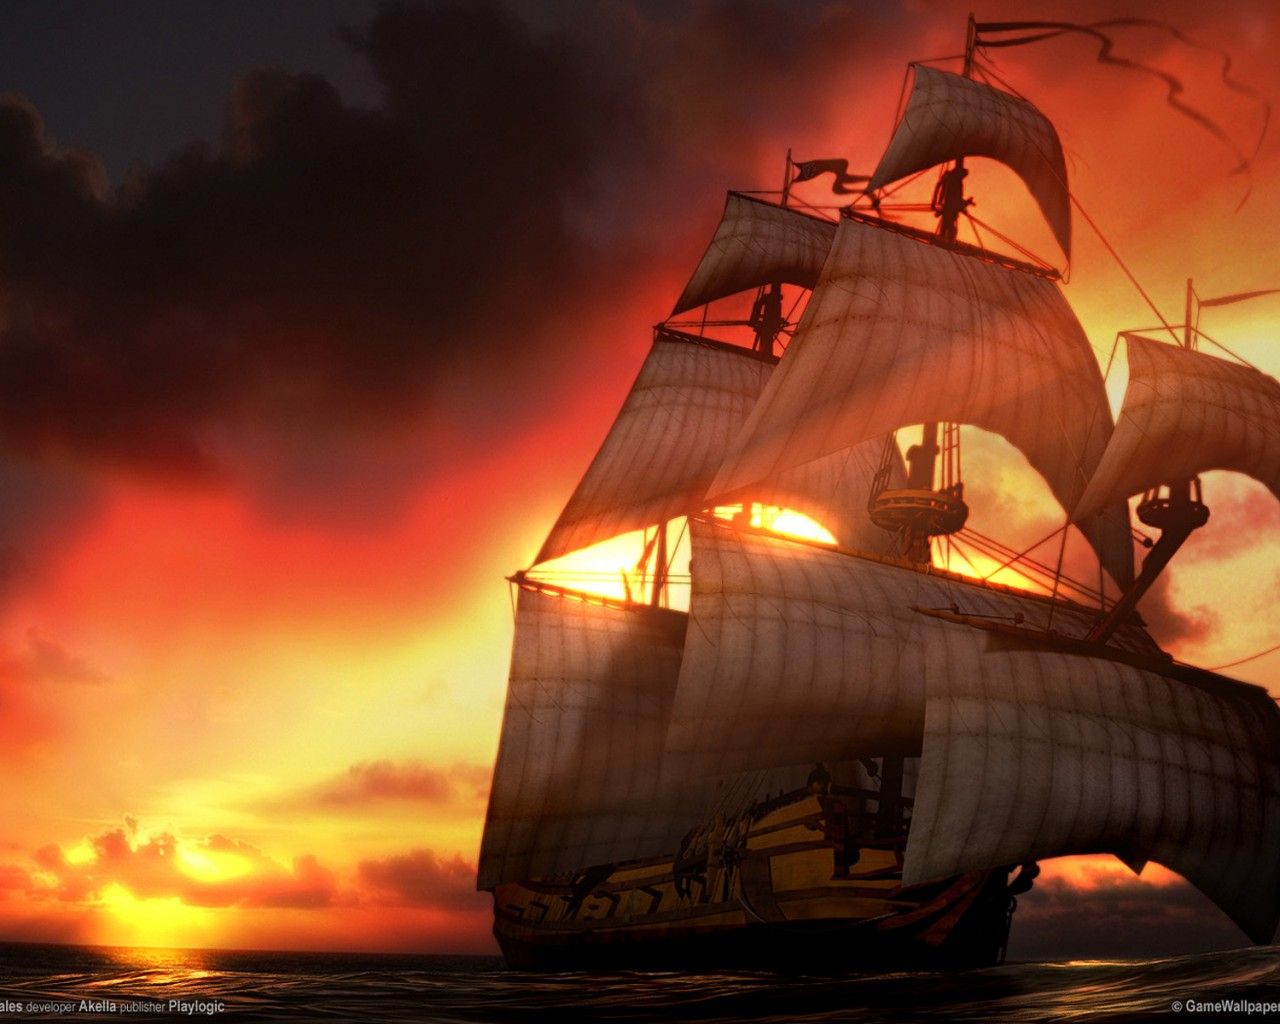 Pirates images Pirate Ship HD wallpaper and background photos 1280x1024